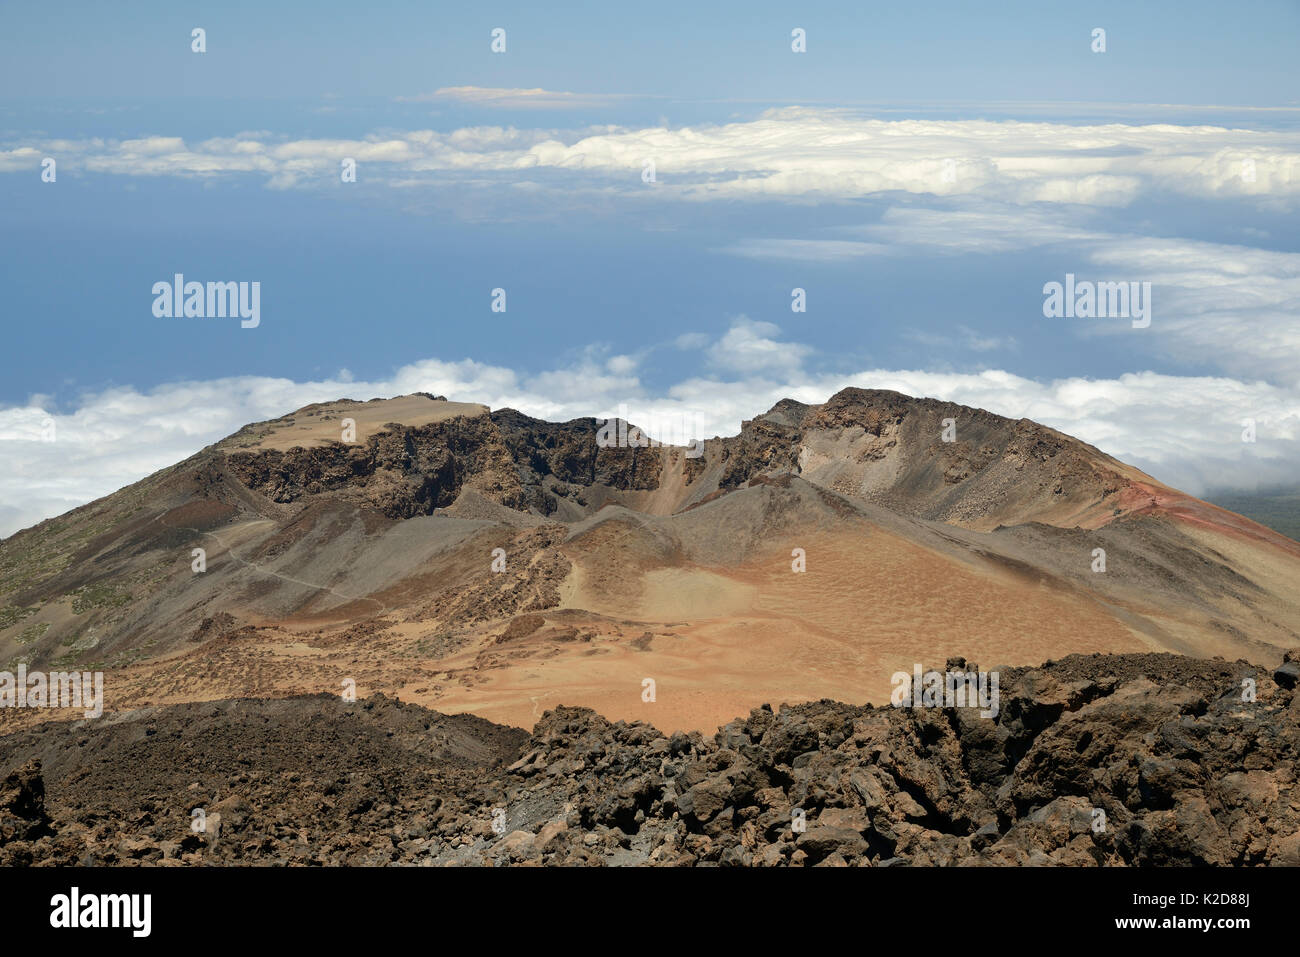 Old lava flows and summit of Pico Viejo Volcano viewed from Mount Teide, with masses of pumice deposits around the crater, Tenerife, May 2014. - Stock Image